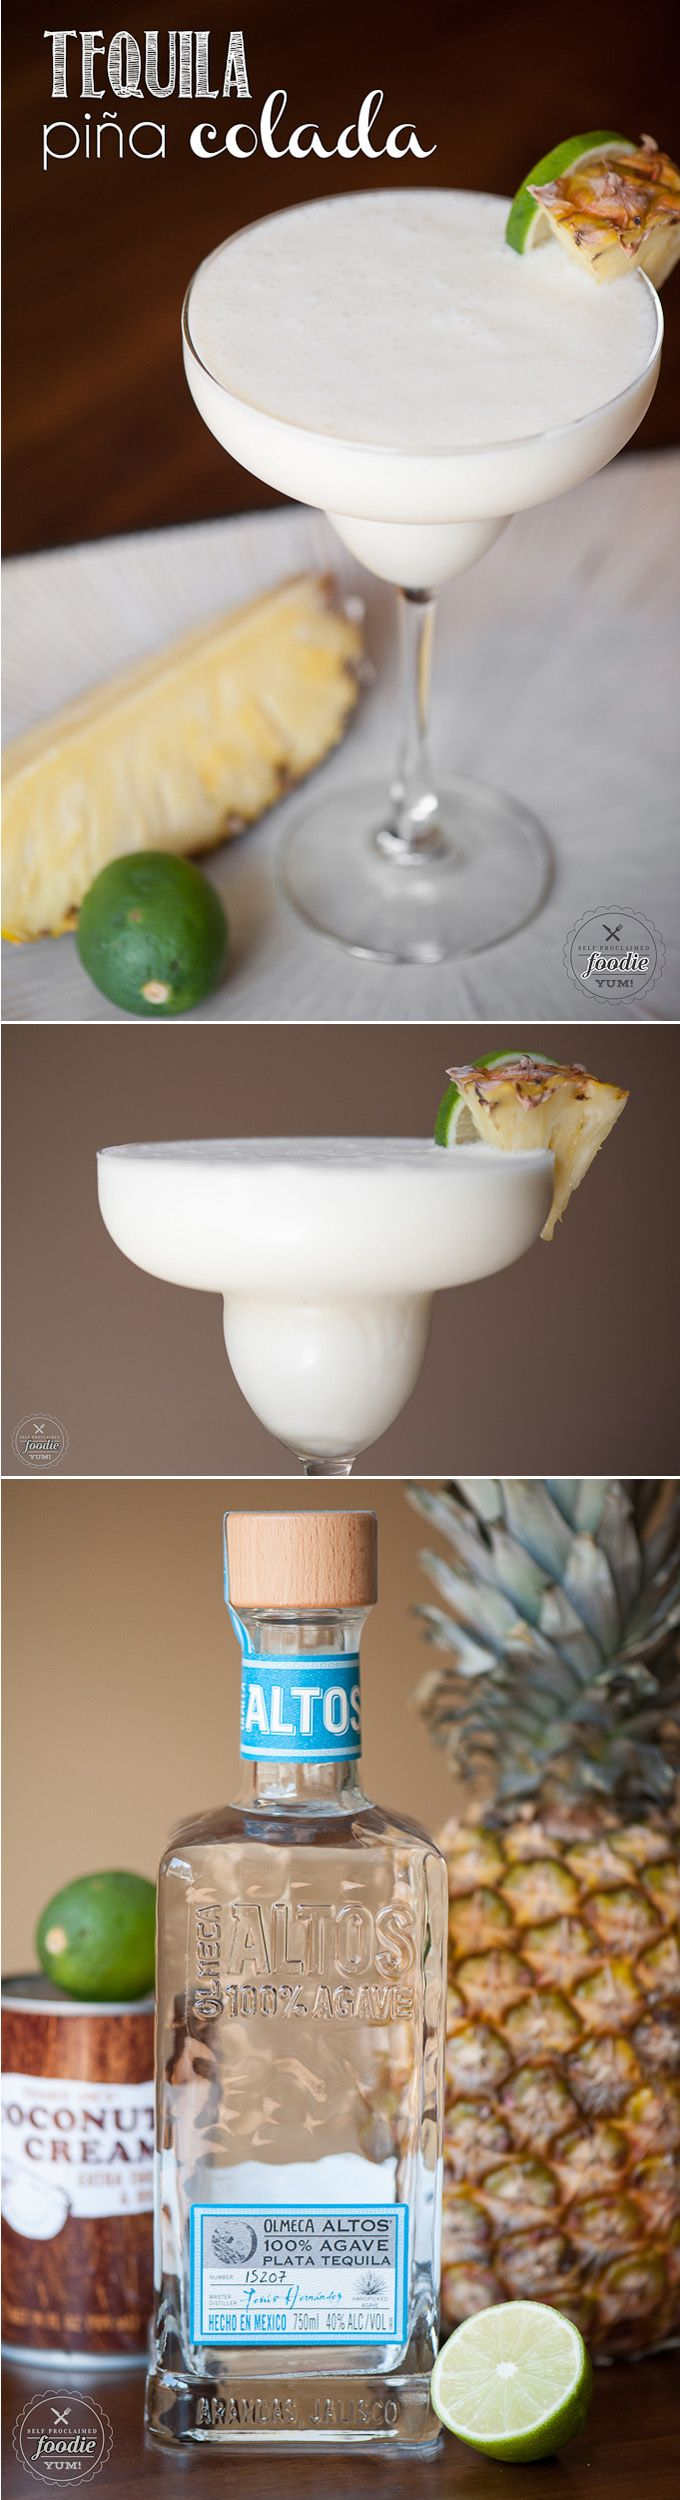 Shake up your traditional drink with this Tequila Pina Colada made with silver tequila, coconut cream, fresh pineapple, plus pineapple and lime juice.